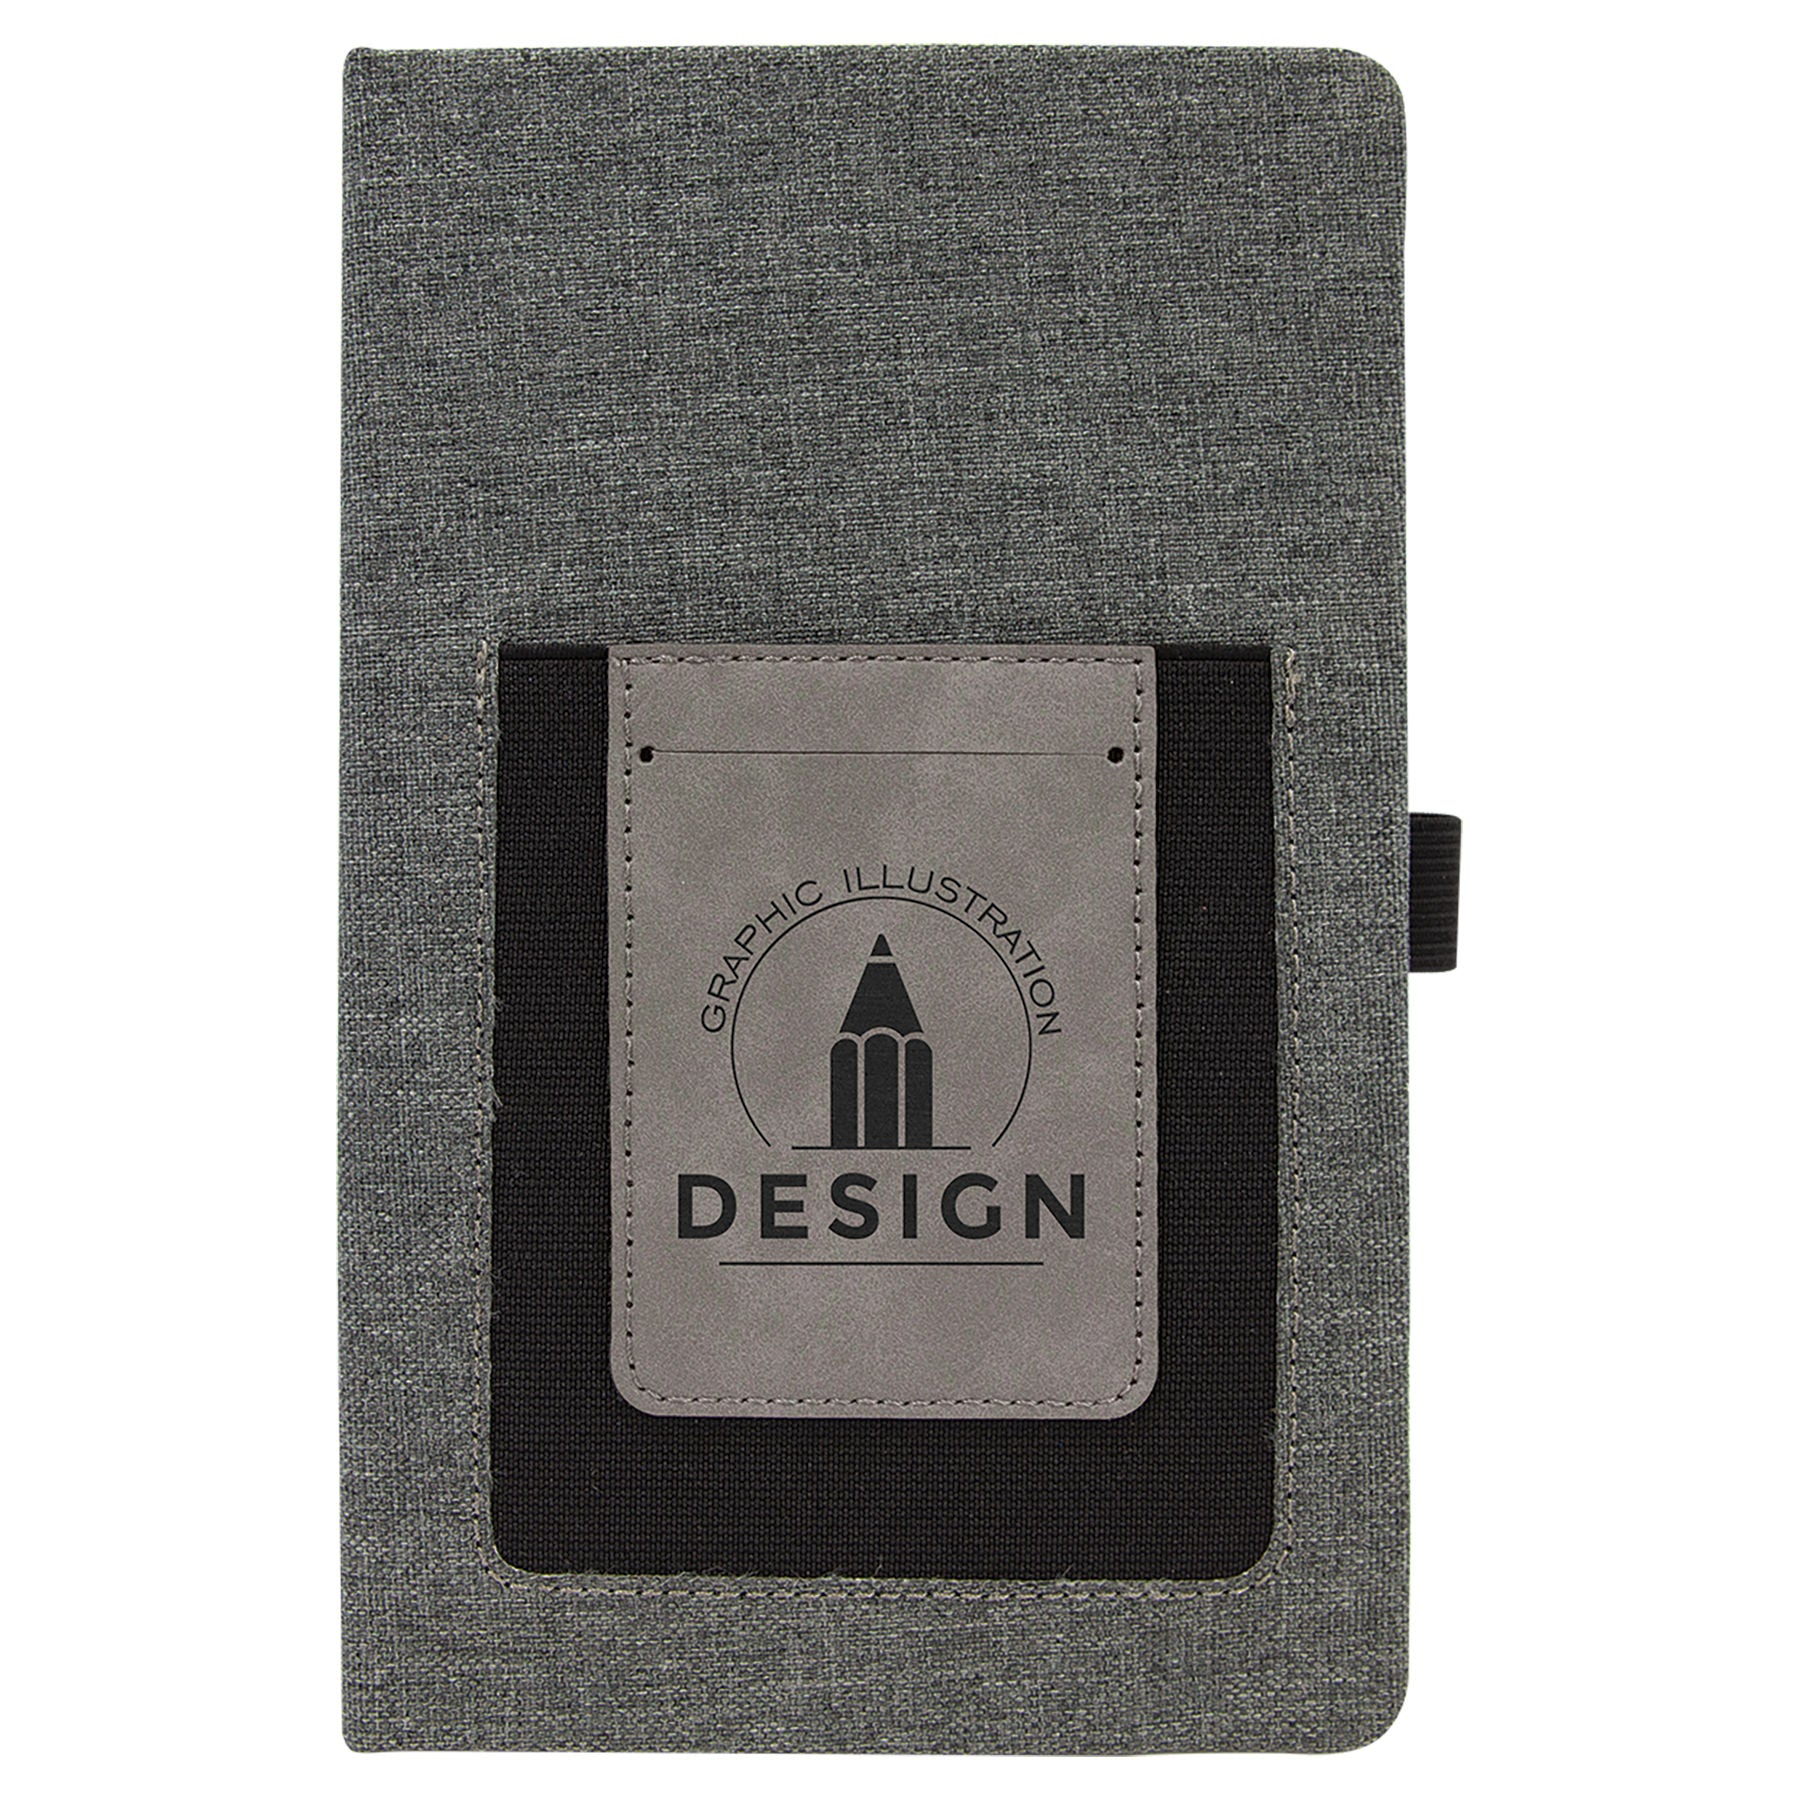 Canvas Journal with Phone Holder - Black Diamond Laser Design